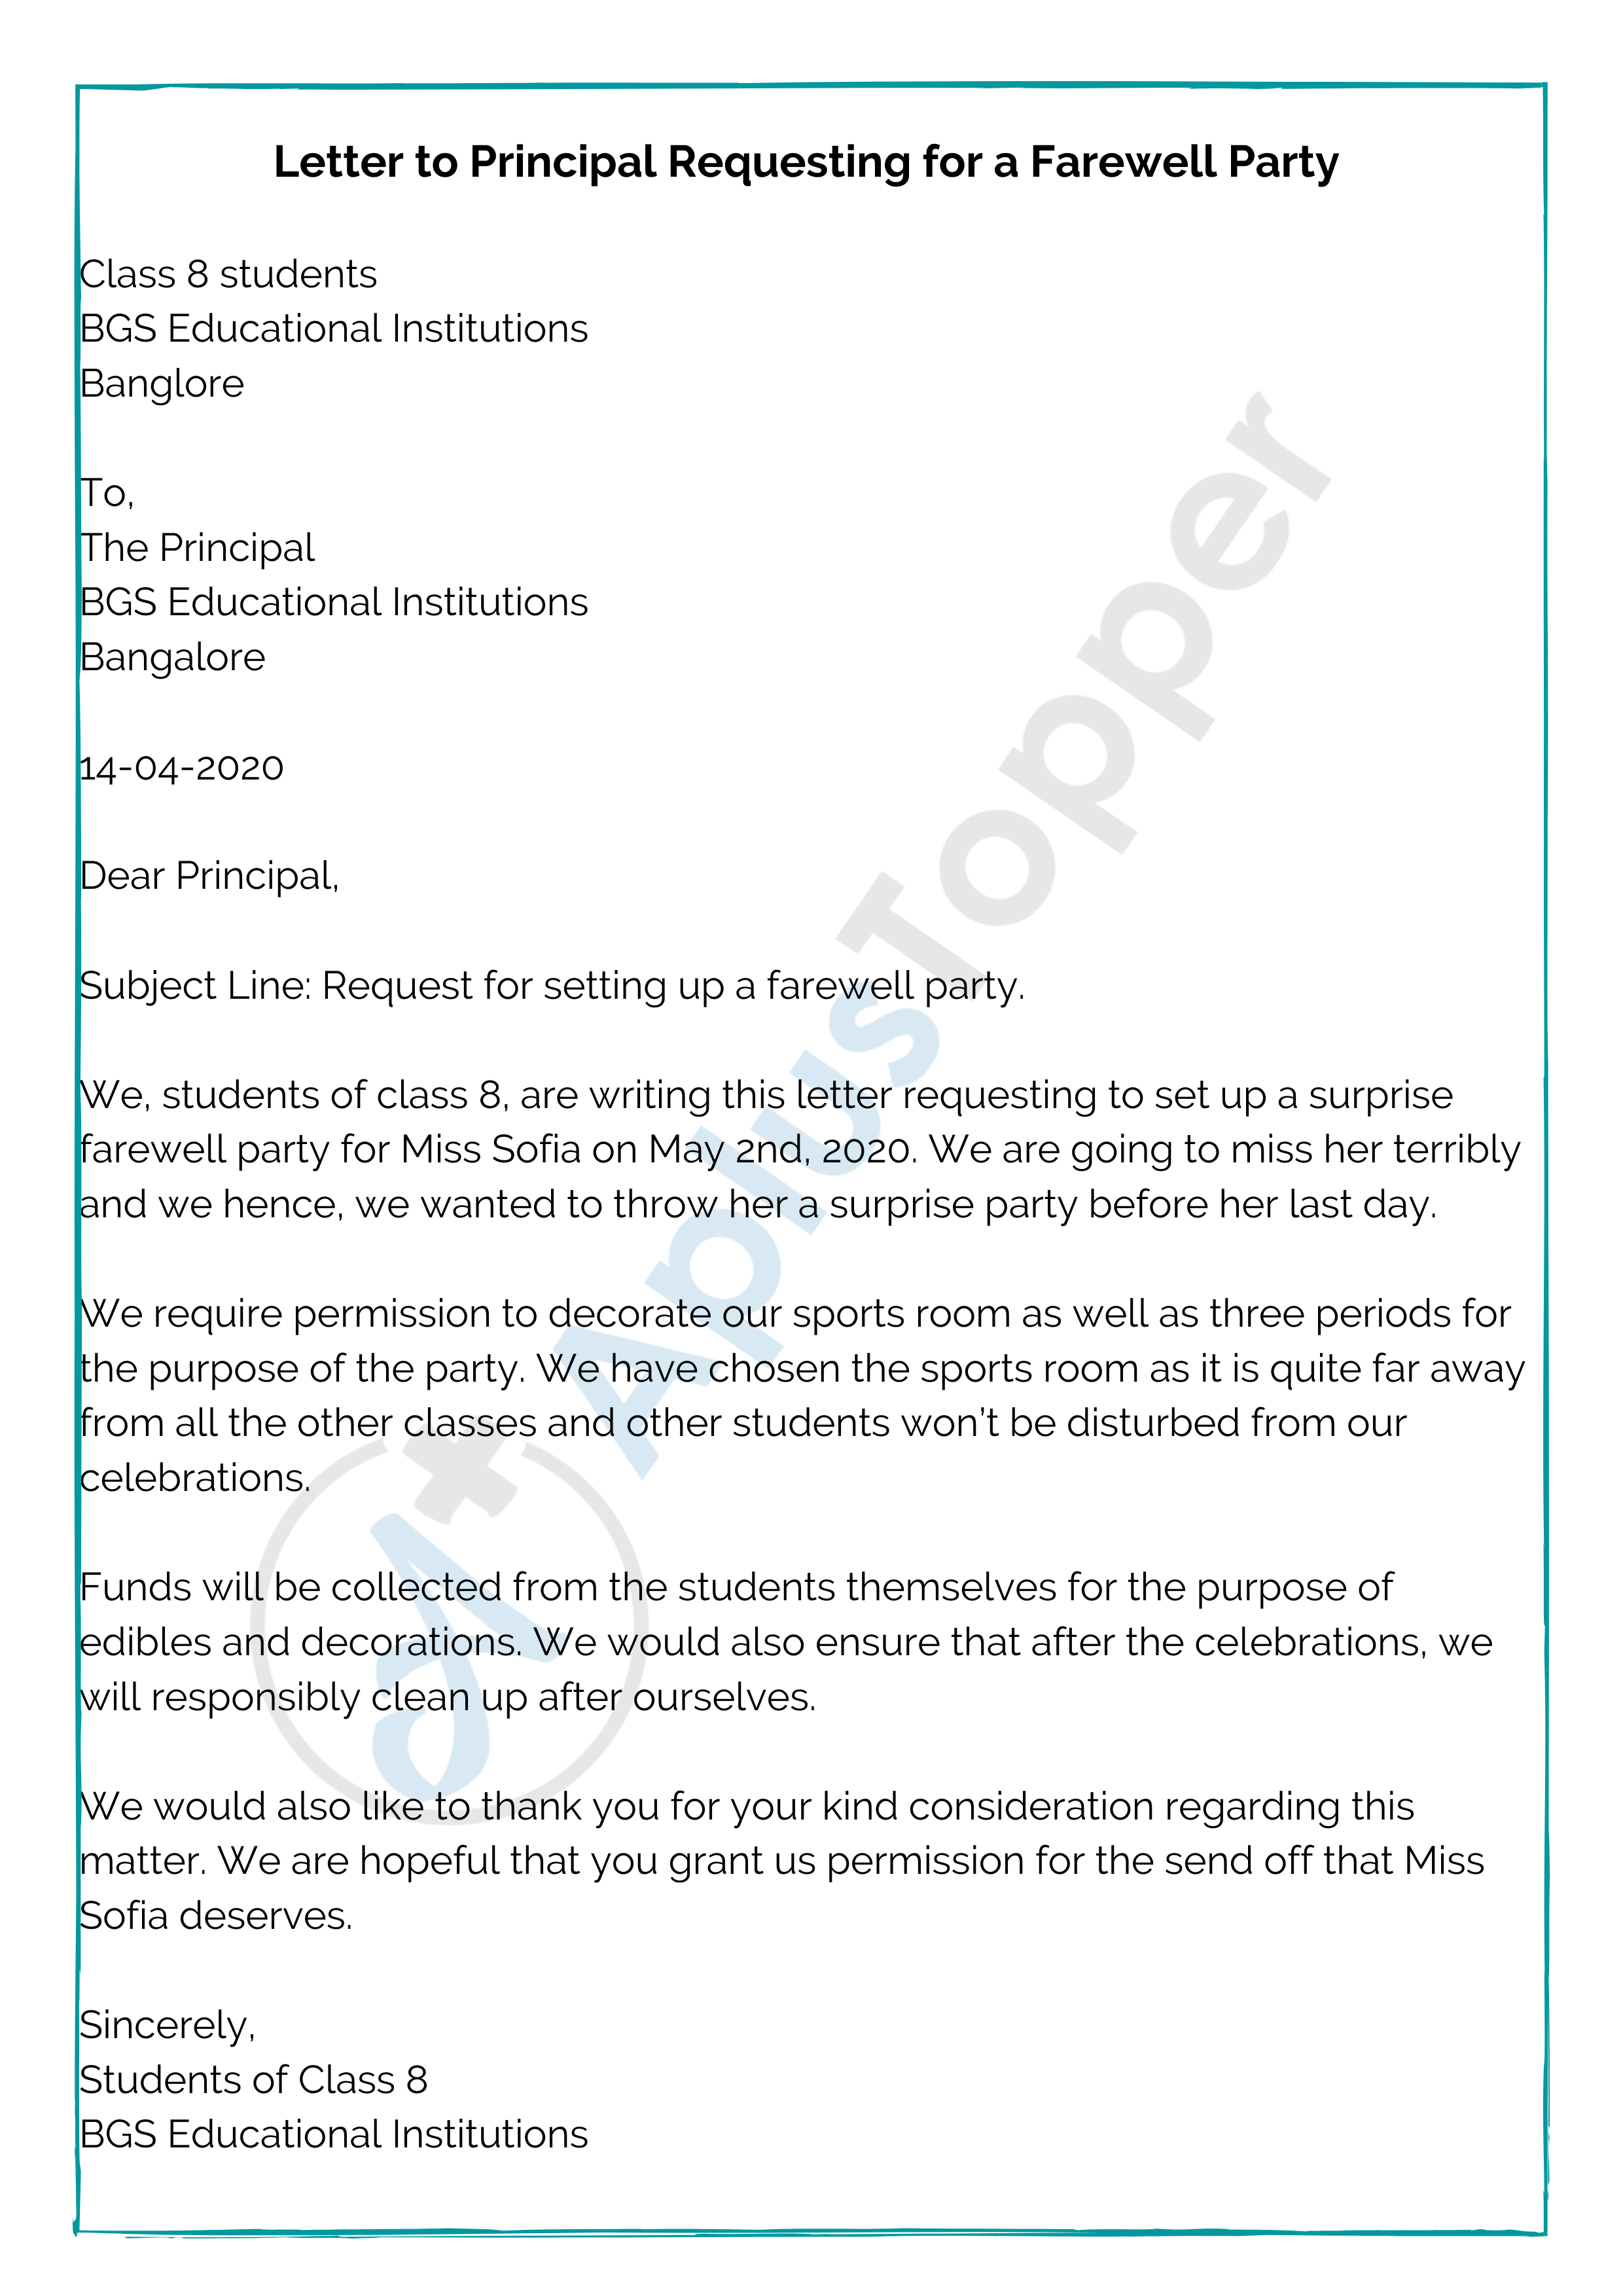 Letter to Principal Requesting for a Farewell Party